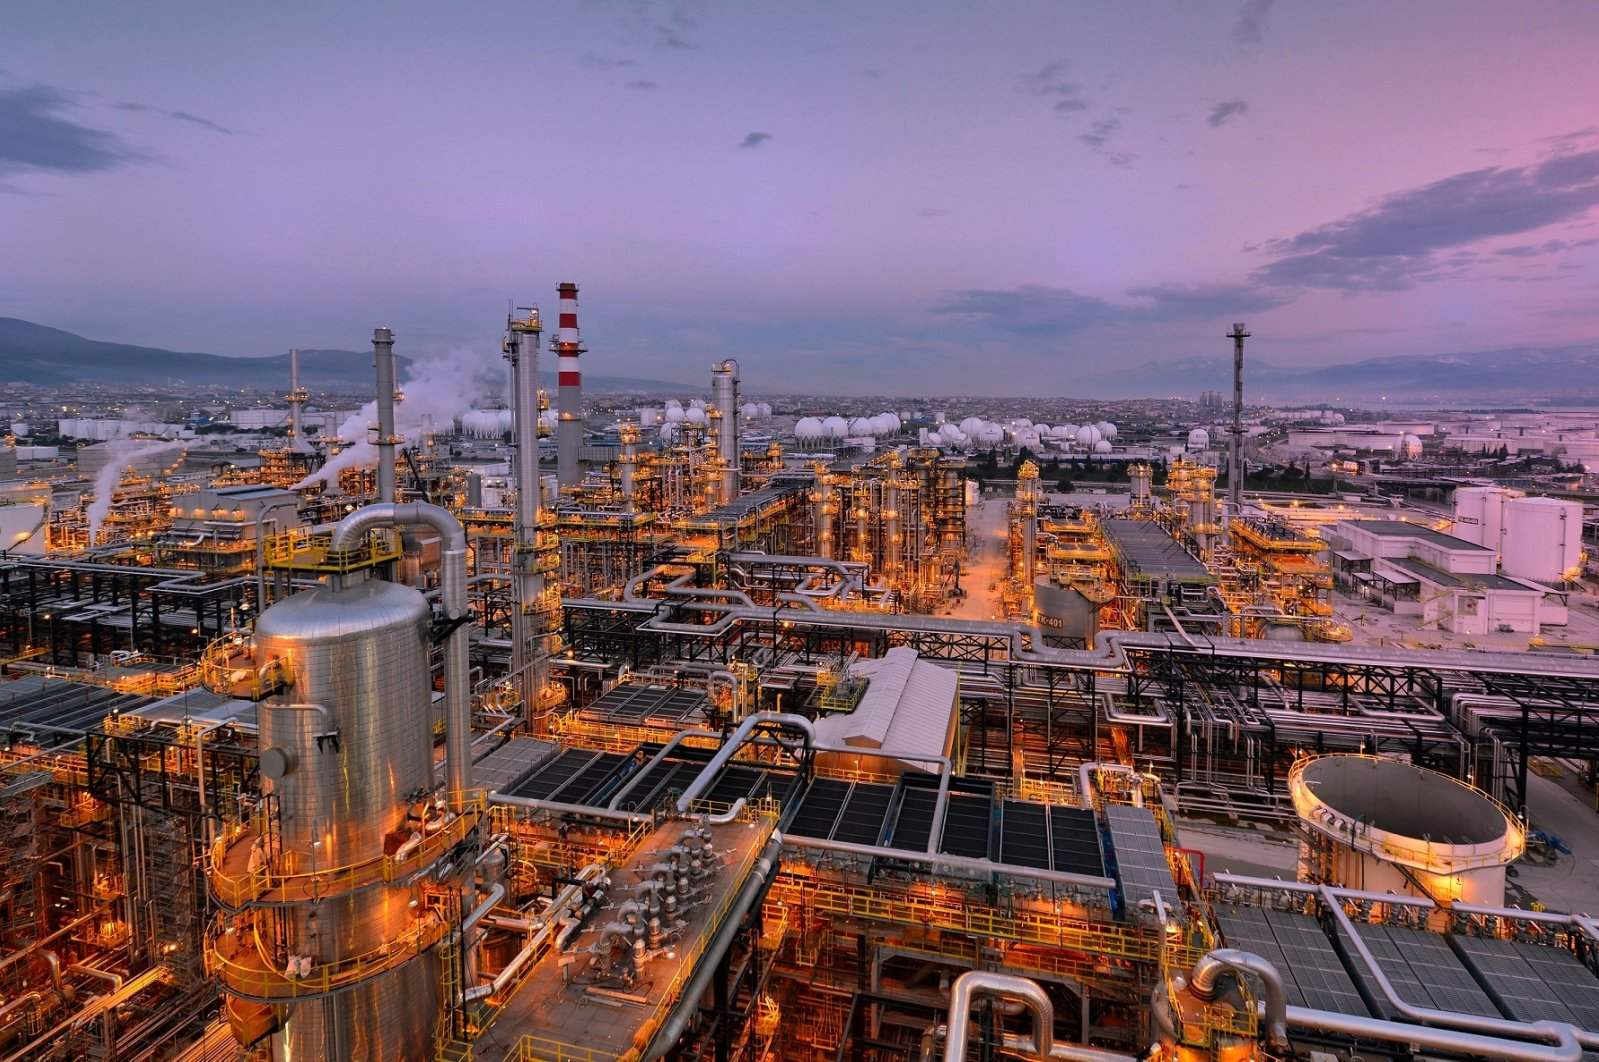 TÜPRAŞ is Europe's 7th largest refinery with 30 million tons of crude oil processing capacity. (AA Photo)